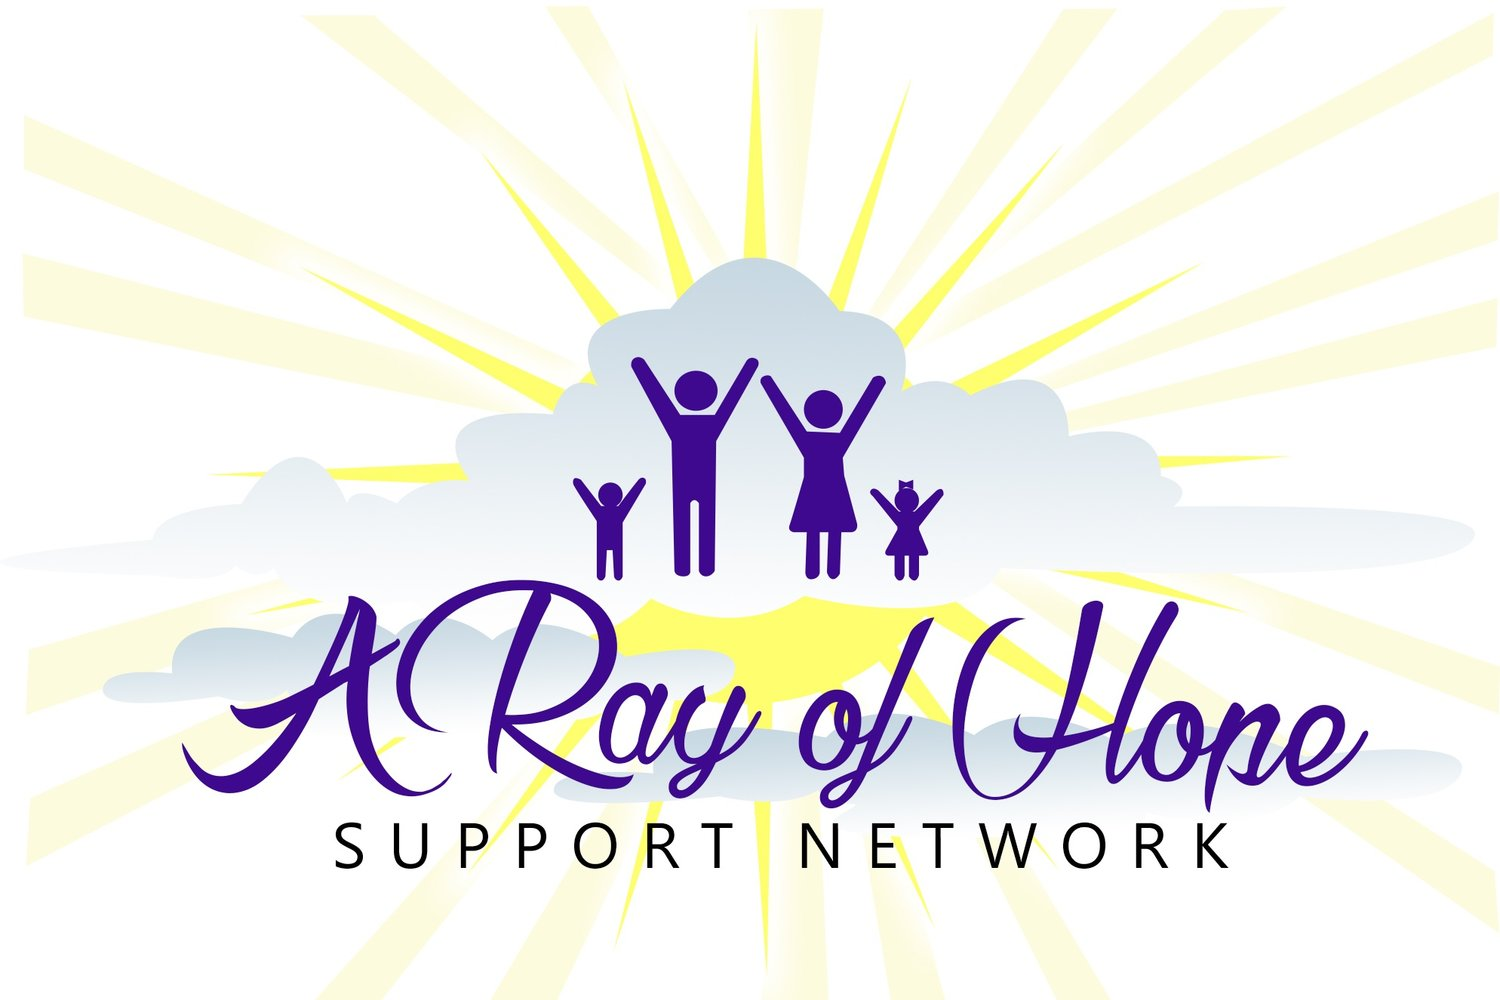 A Ray of Hope Support Network